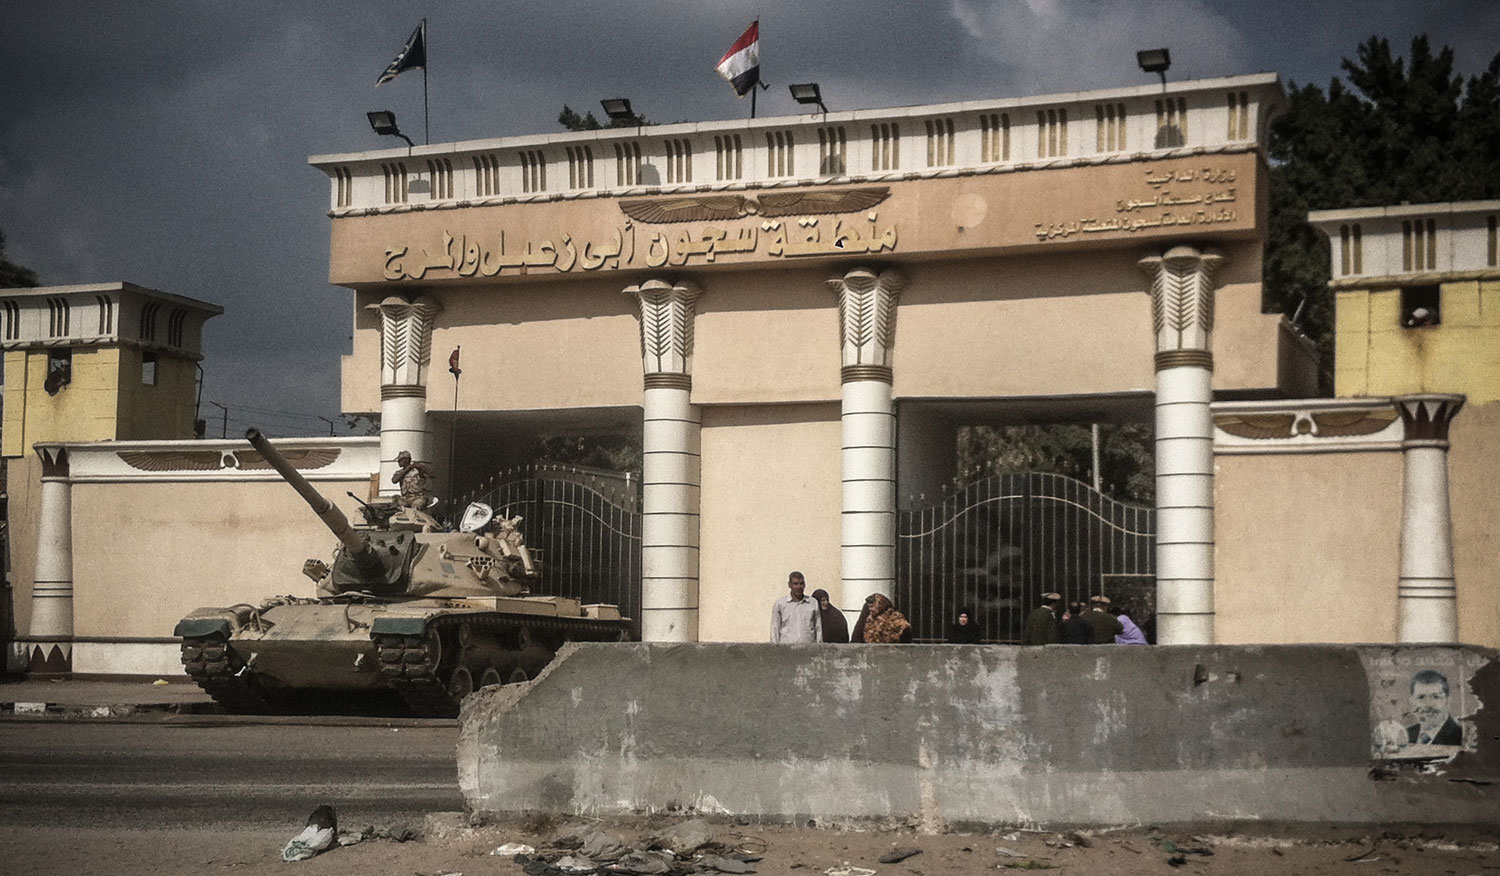 The-front-gate-of-Abu-Zaabal-a-prison-north-of-Cairo-where-hundreds-of-protestors-are-currently-detained-Photo-by-Mosaab-Elshamy